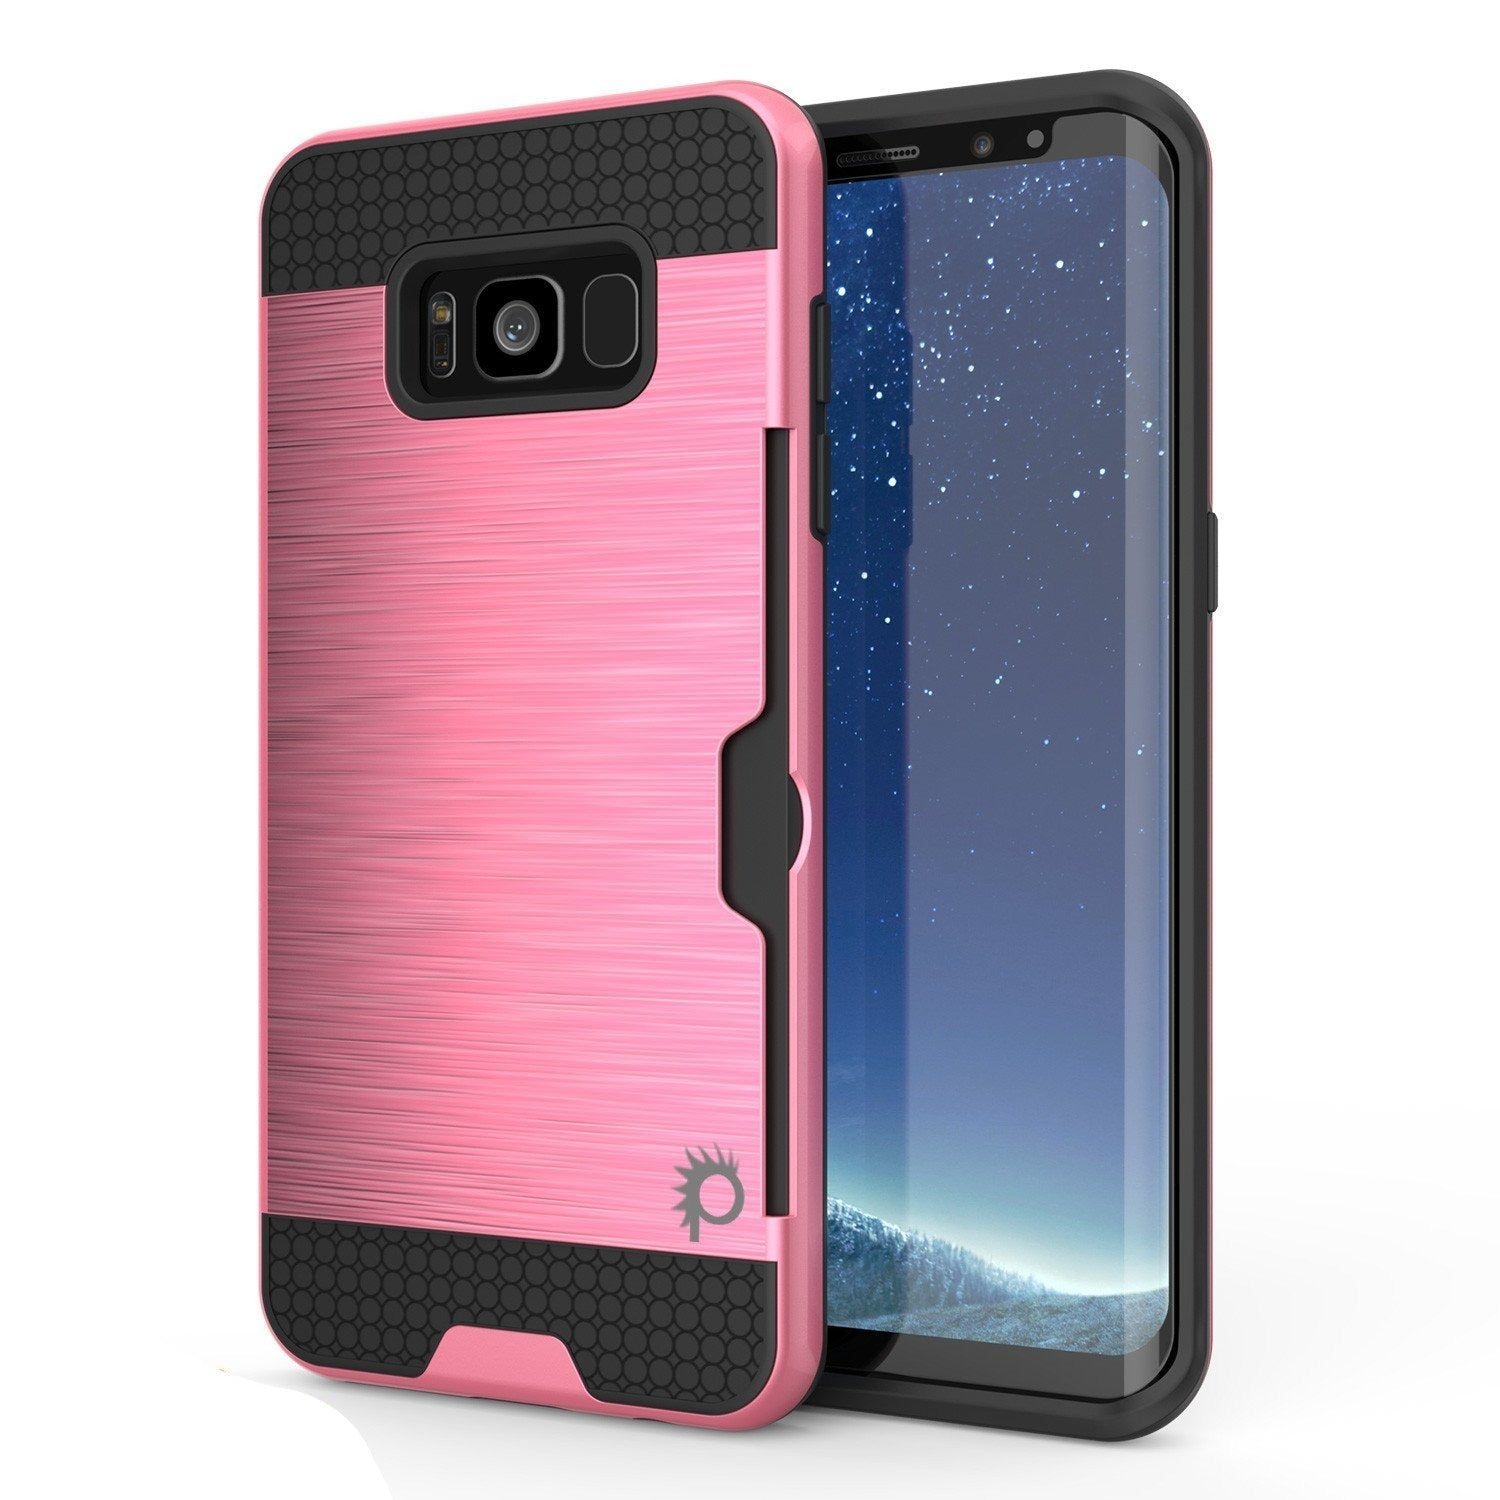 Galaxy S8 Case, PUNKcase [SLOT Series] [Slim Fit] Dual-Layer Armor Cover w/Integrated Anti-Shock System, Credit Card Slot & PUNKSHIELD Screen Protector for Samsung Galaxy S8 [Pink]